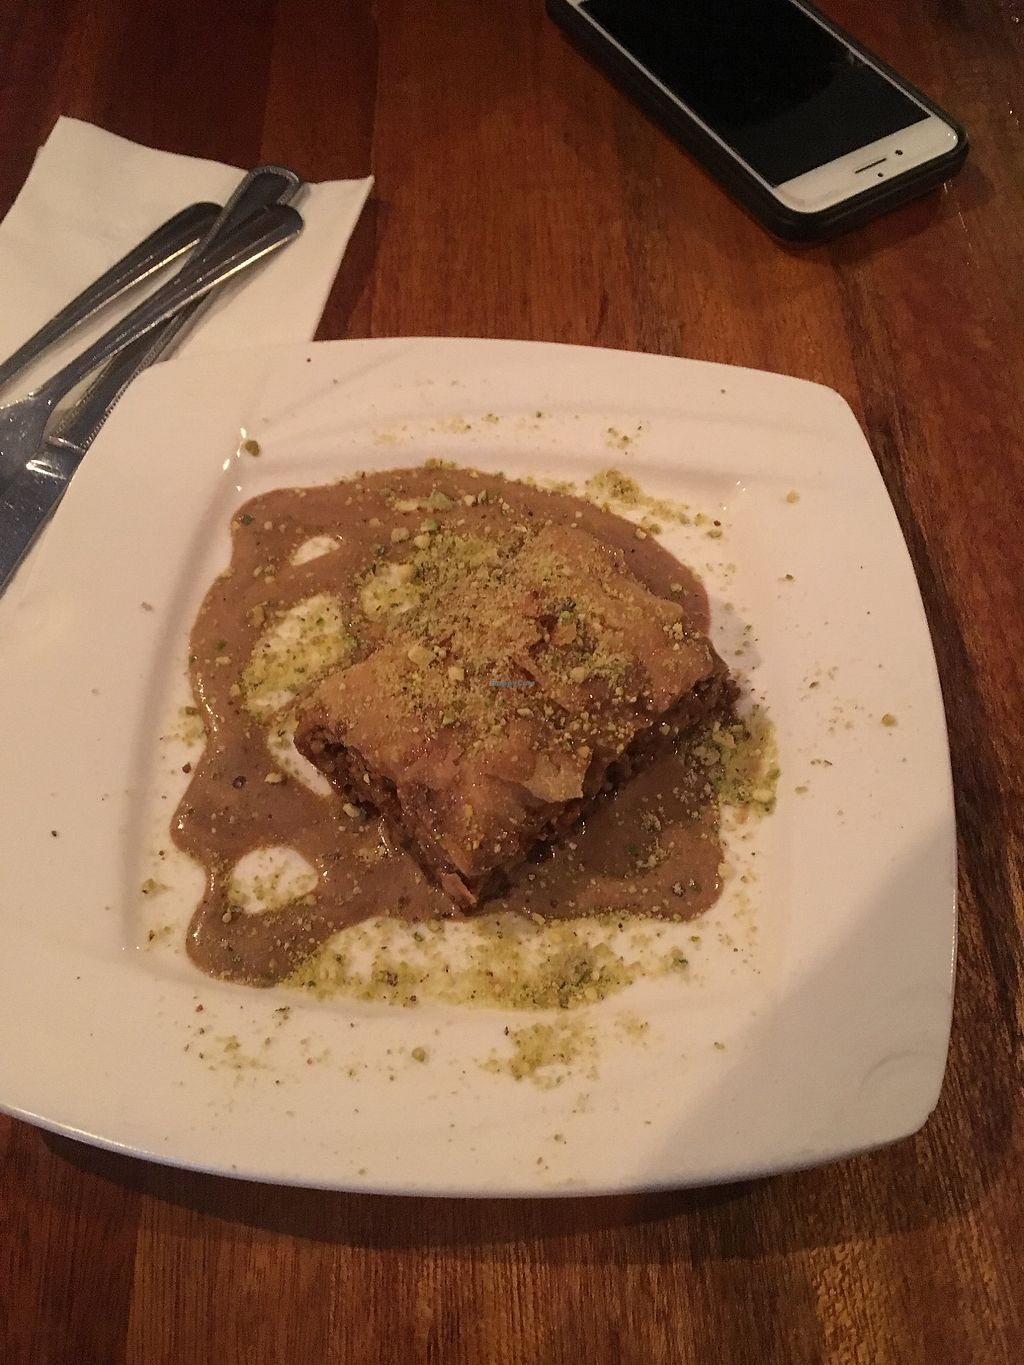 "Photo of Bunna Cafe  by <a href=""/members/profile/770veg"">770veg</a> <br/>Baklava <br/> May 13, 2018  - <a href='/contact/abuse/image/34274/399389'>Report</a>"